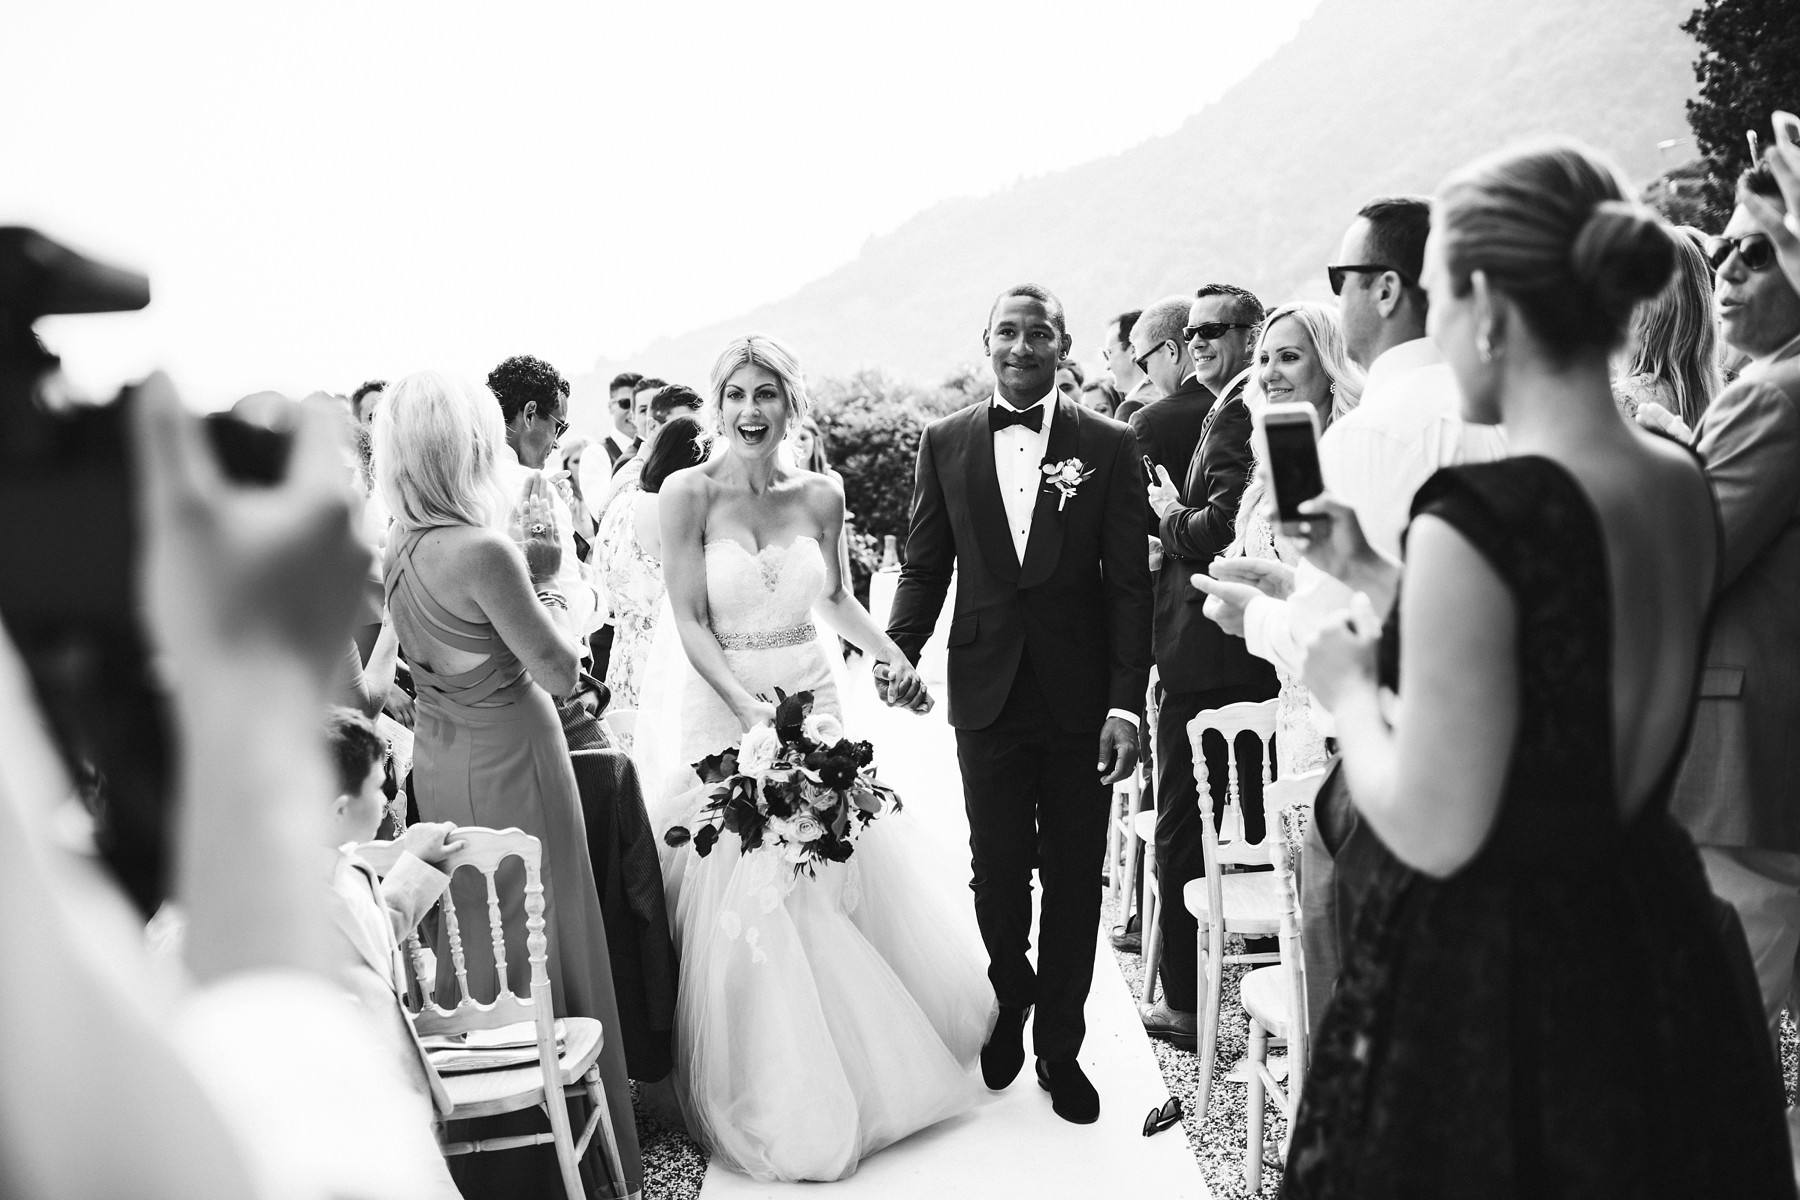 Wedding on Lake Como: make your luxury dreams come true!